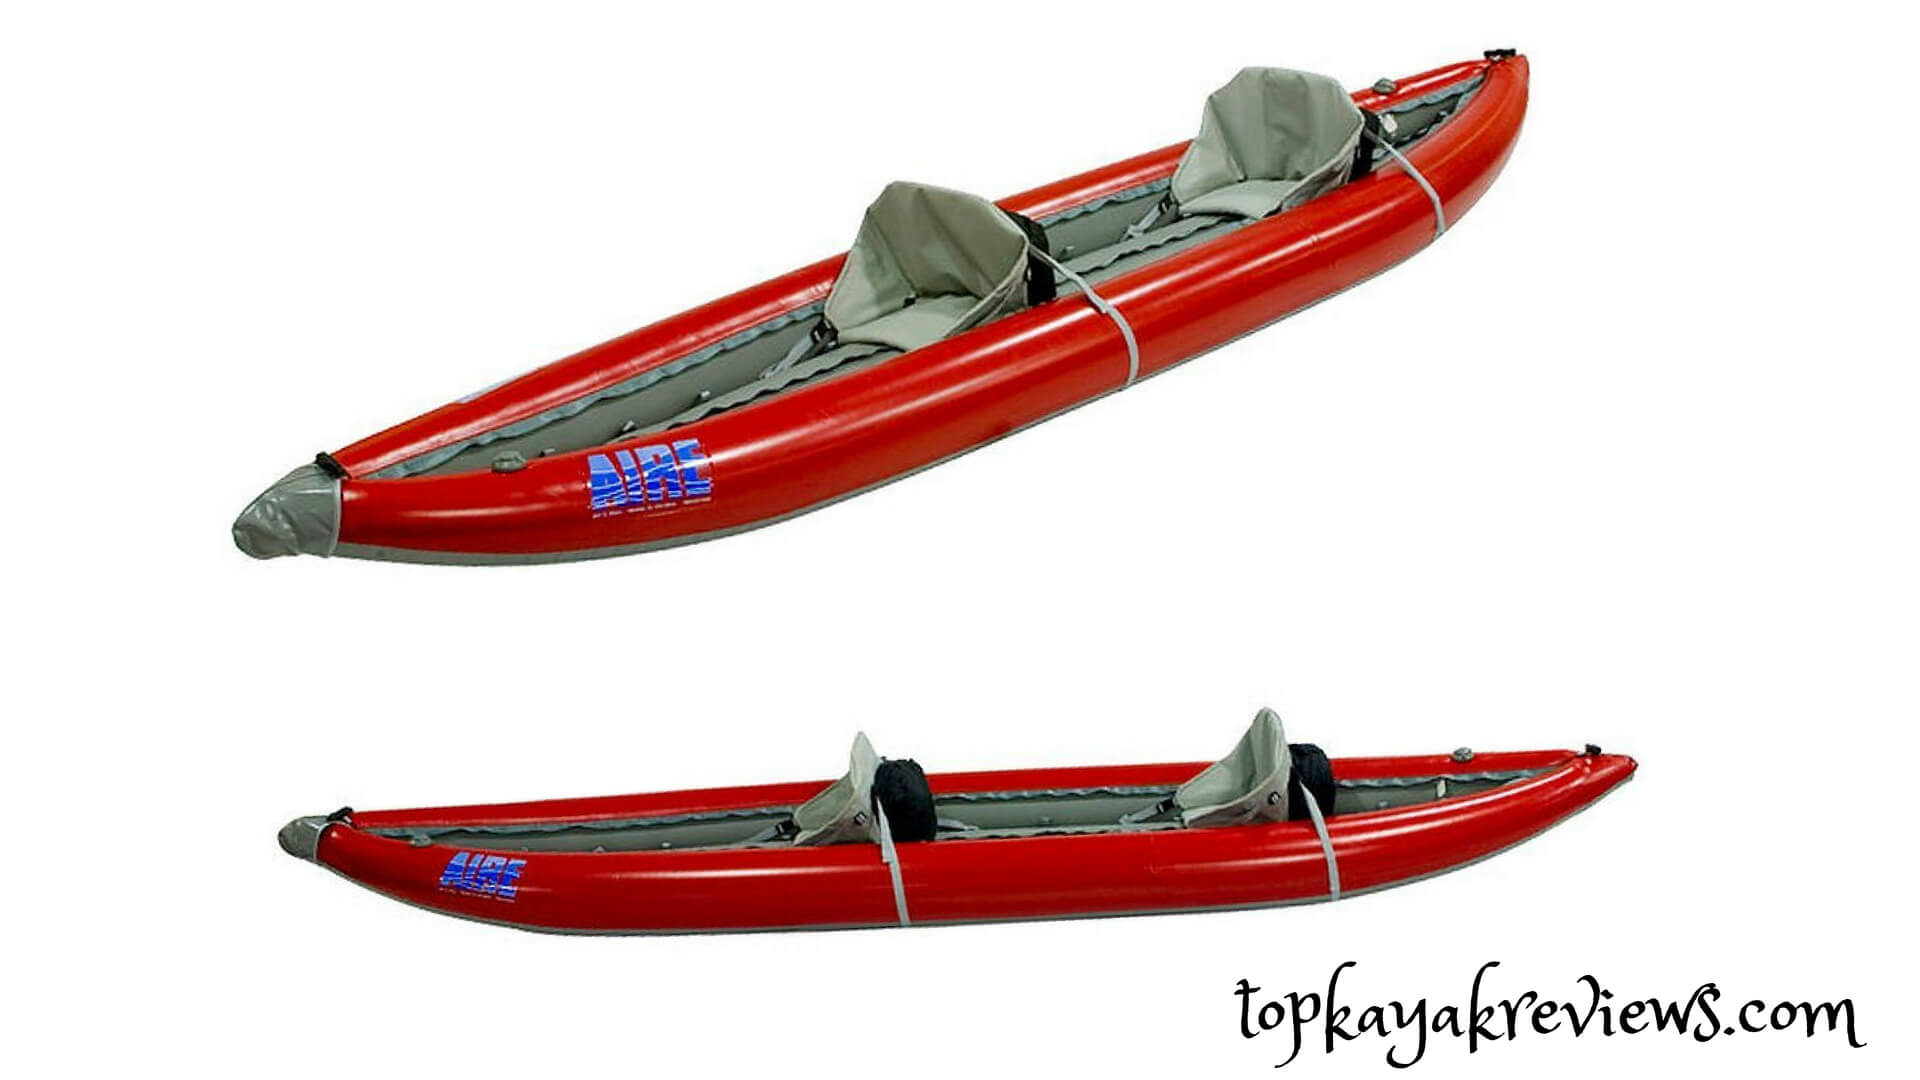 AIRE Super Lynx Inflatable Kayak